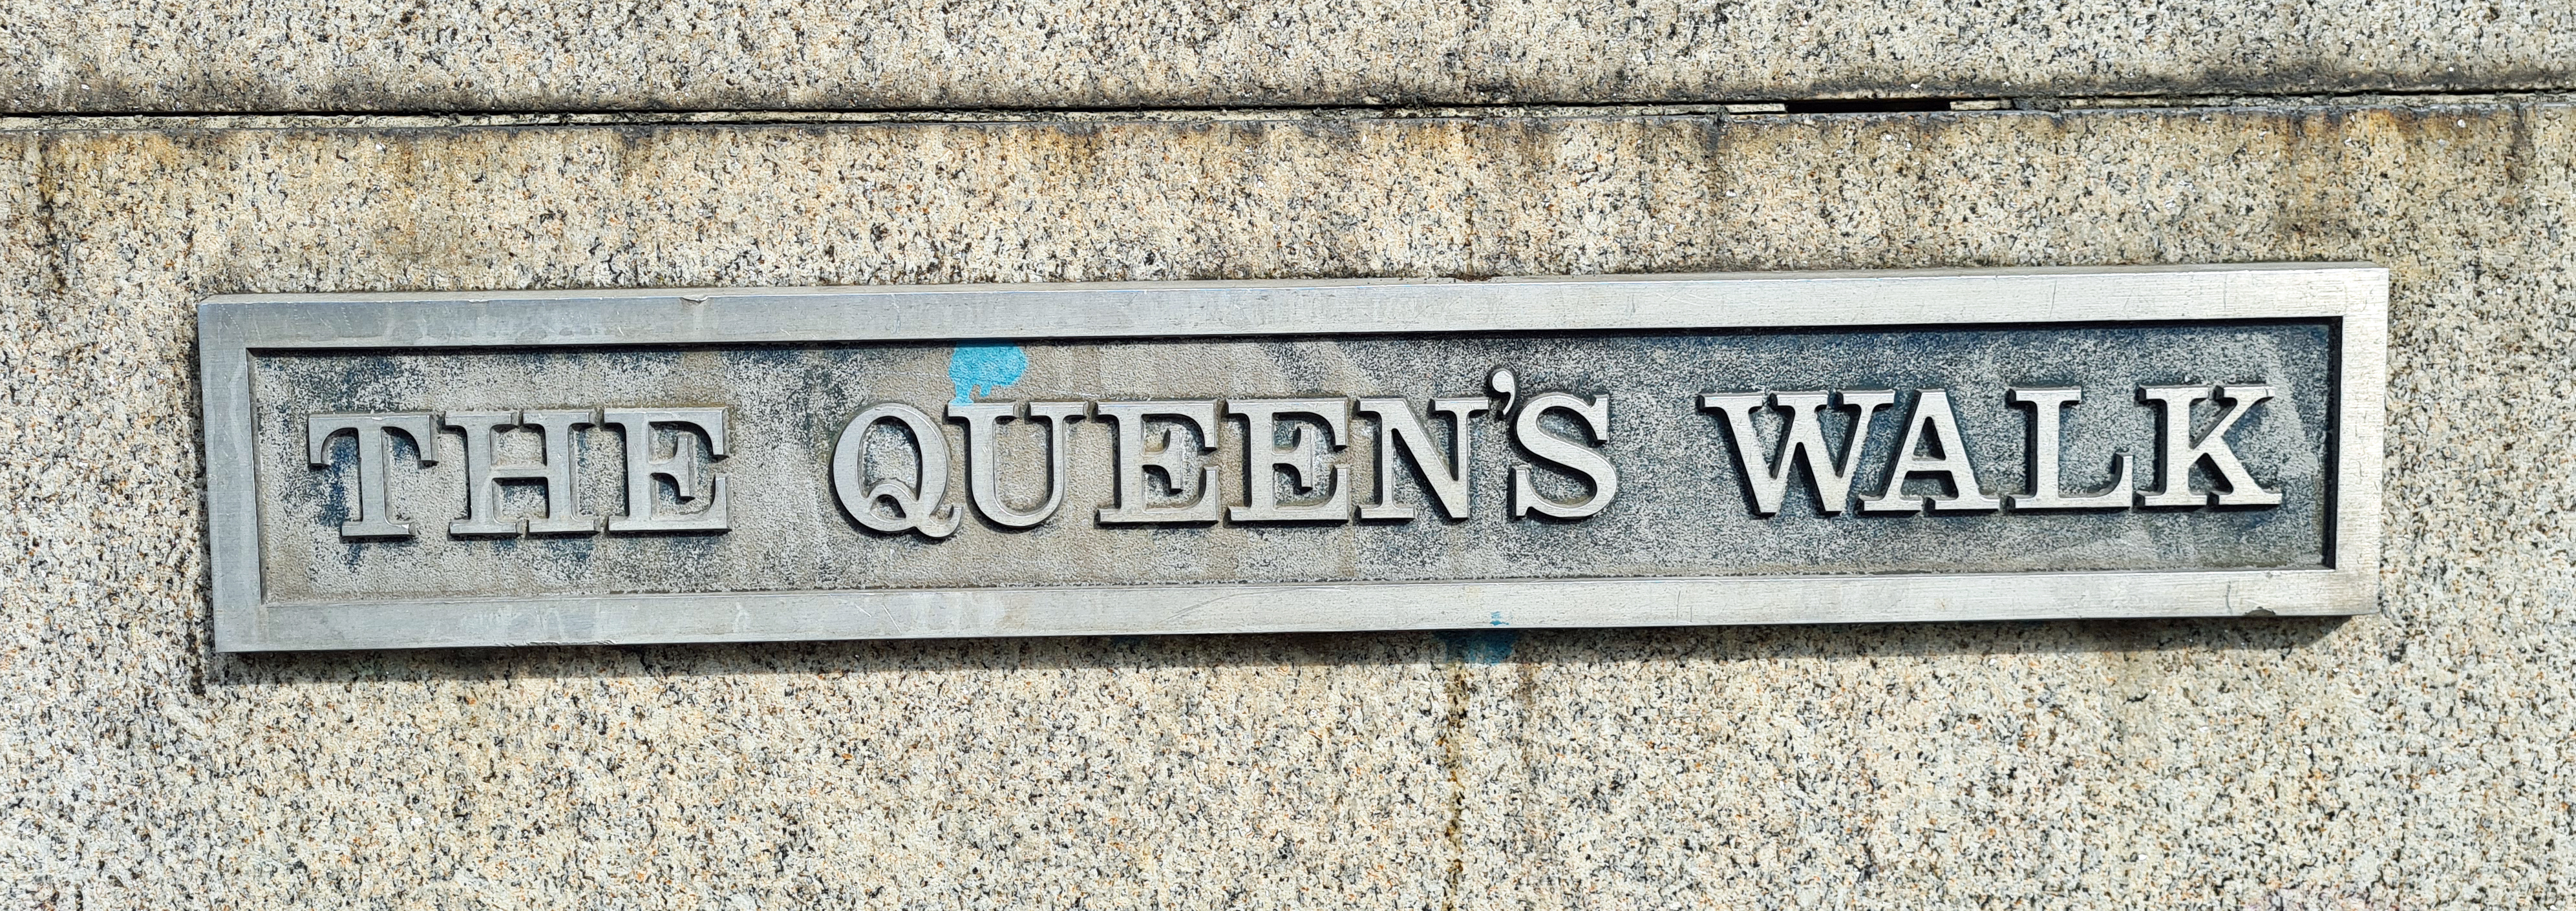 The Queen's Walk was part of an opening up and redevelopment of the South Bank and was incorporated into the Silver Jubilee Walkway